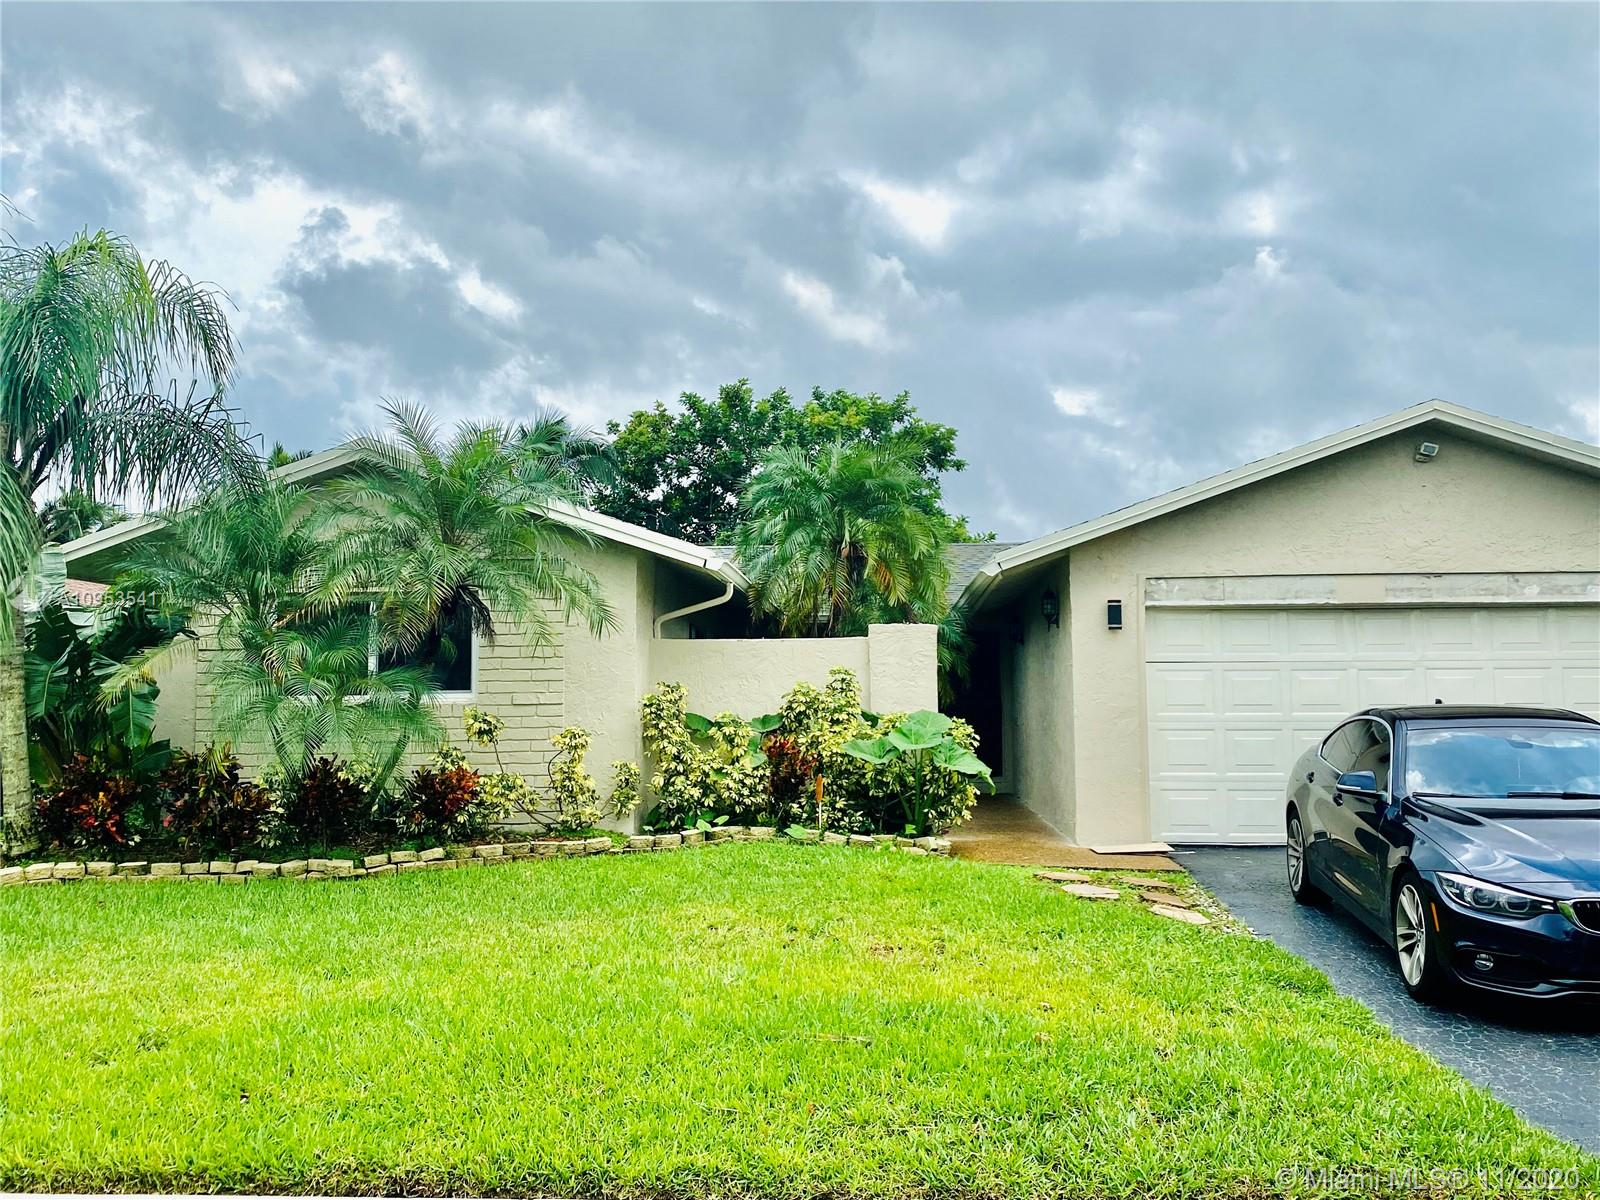 4 BEDROOM 2 BATHROOM IN SUNRISE WELLEBY. 2 CAR GARAGE. BIG BACKYARD FOR KIDS AND ENTERTAINING. GRANITE COUNTER TOP IN KITCHEN AND BATHROOM.STAINLESS STEEL APPLIANCES. WOOD FLOORS THROUGHOUT. TILE IN BATHROOMS. WALK IN CLOSET. CLOSE TO SAWGRASS MILLS MALL AND OTHER SHOPPING AREA. A MUST SEE!